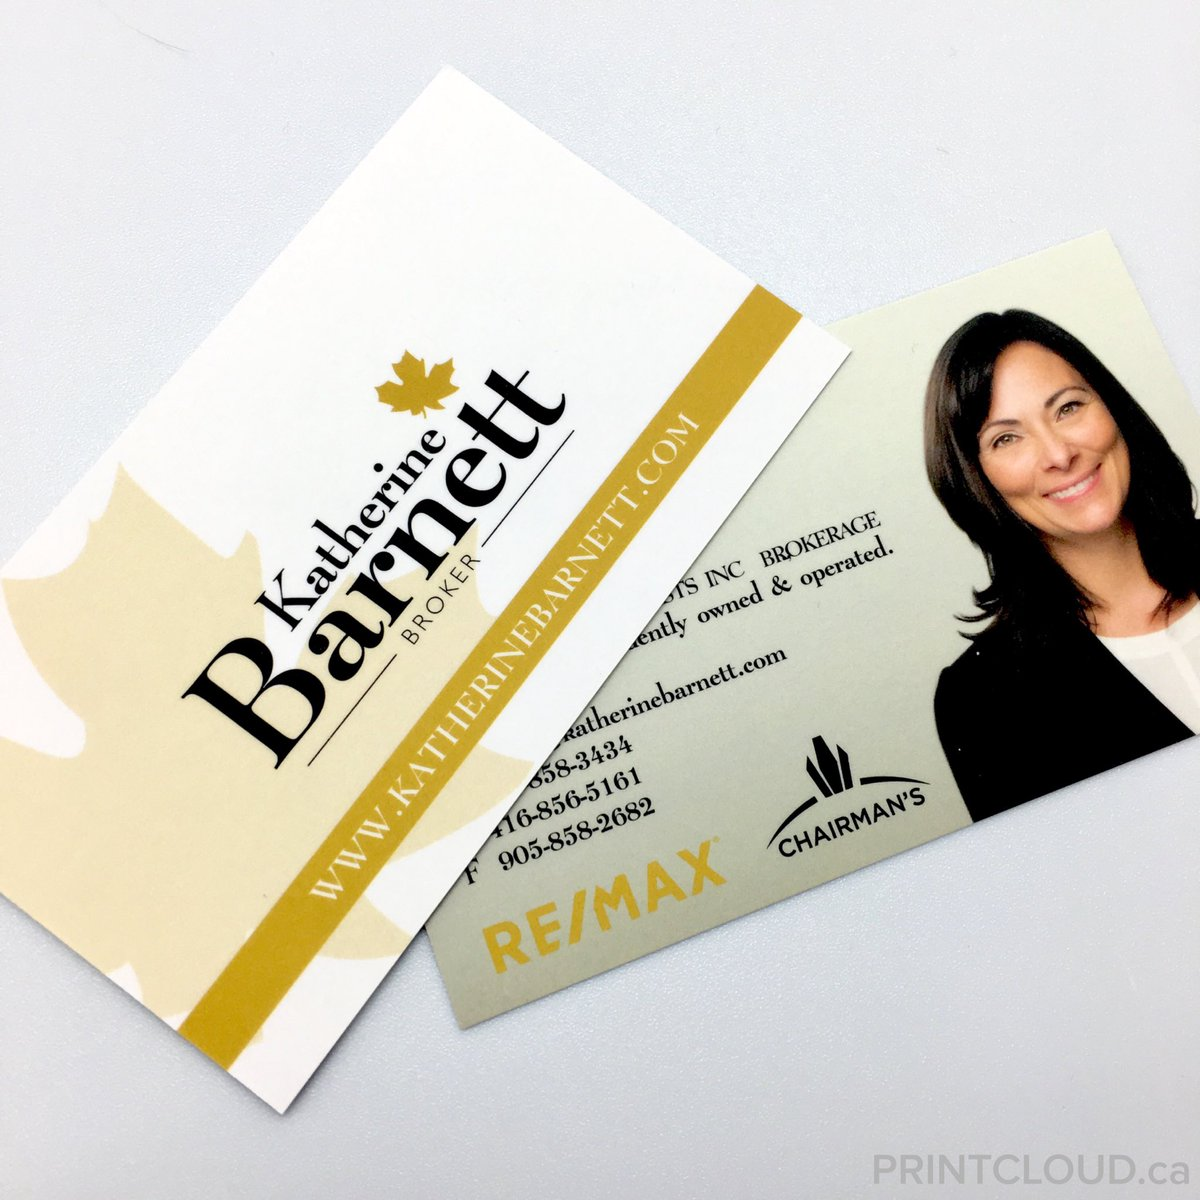 Printcloud printcloudca twitter get noticed with our thick and luxurious royal suede business cards print businesscards toronto montreal vancouver calgary canada online best reheart Image collections